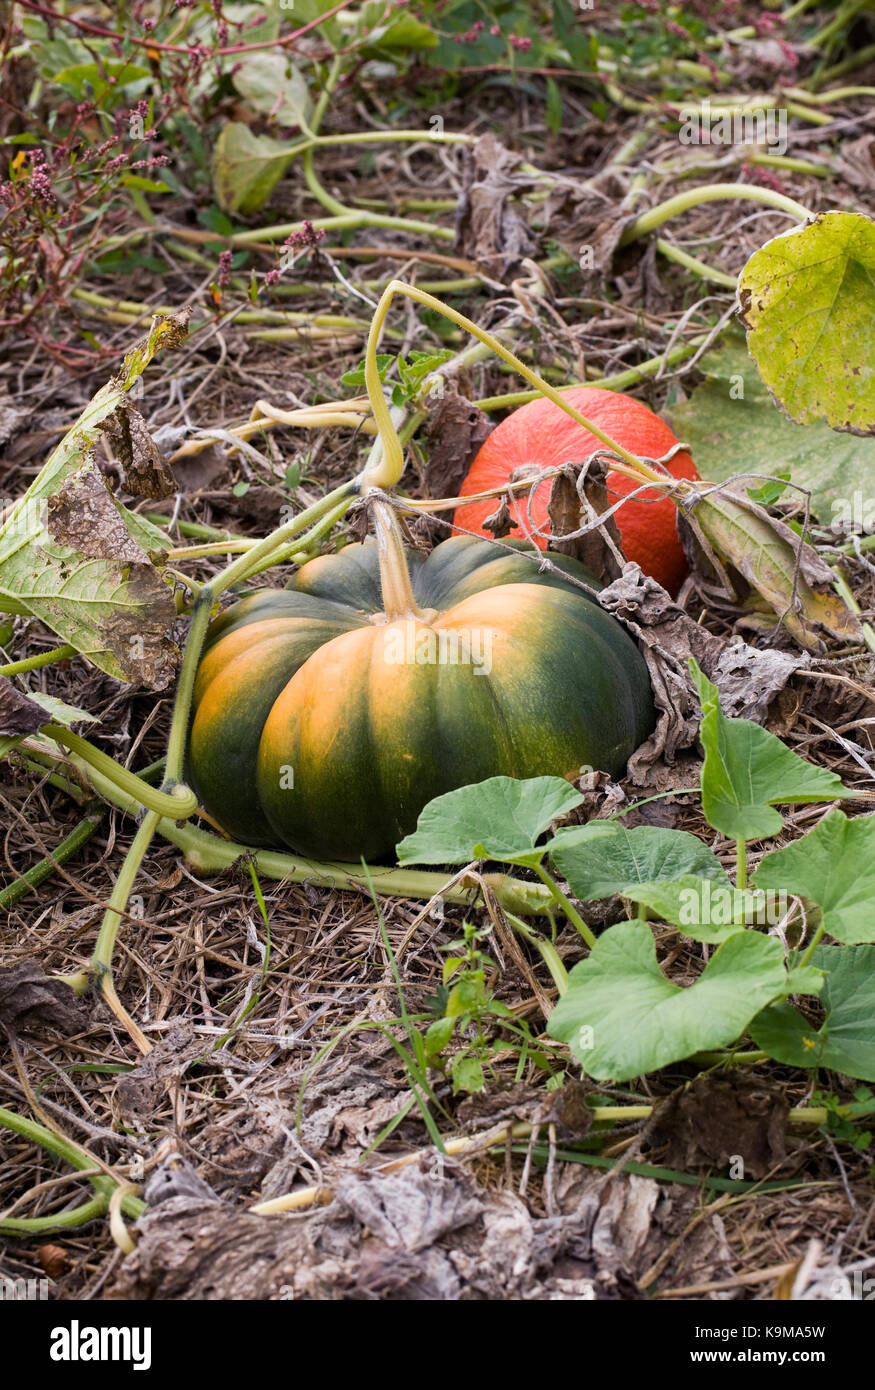 Curcubita. Pumpkins growing in a pumpkin patch. - Stock Image